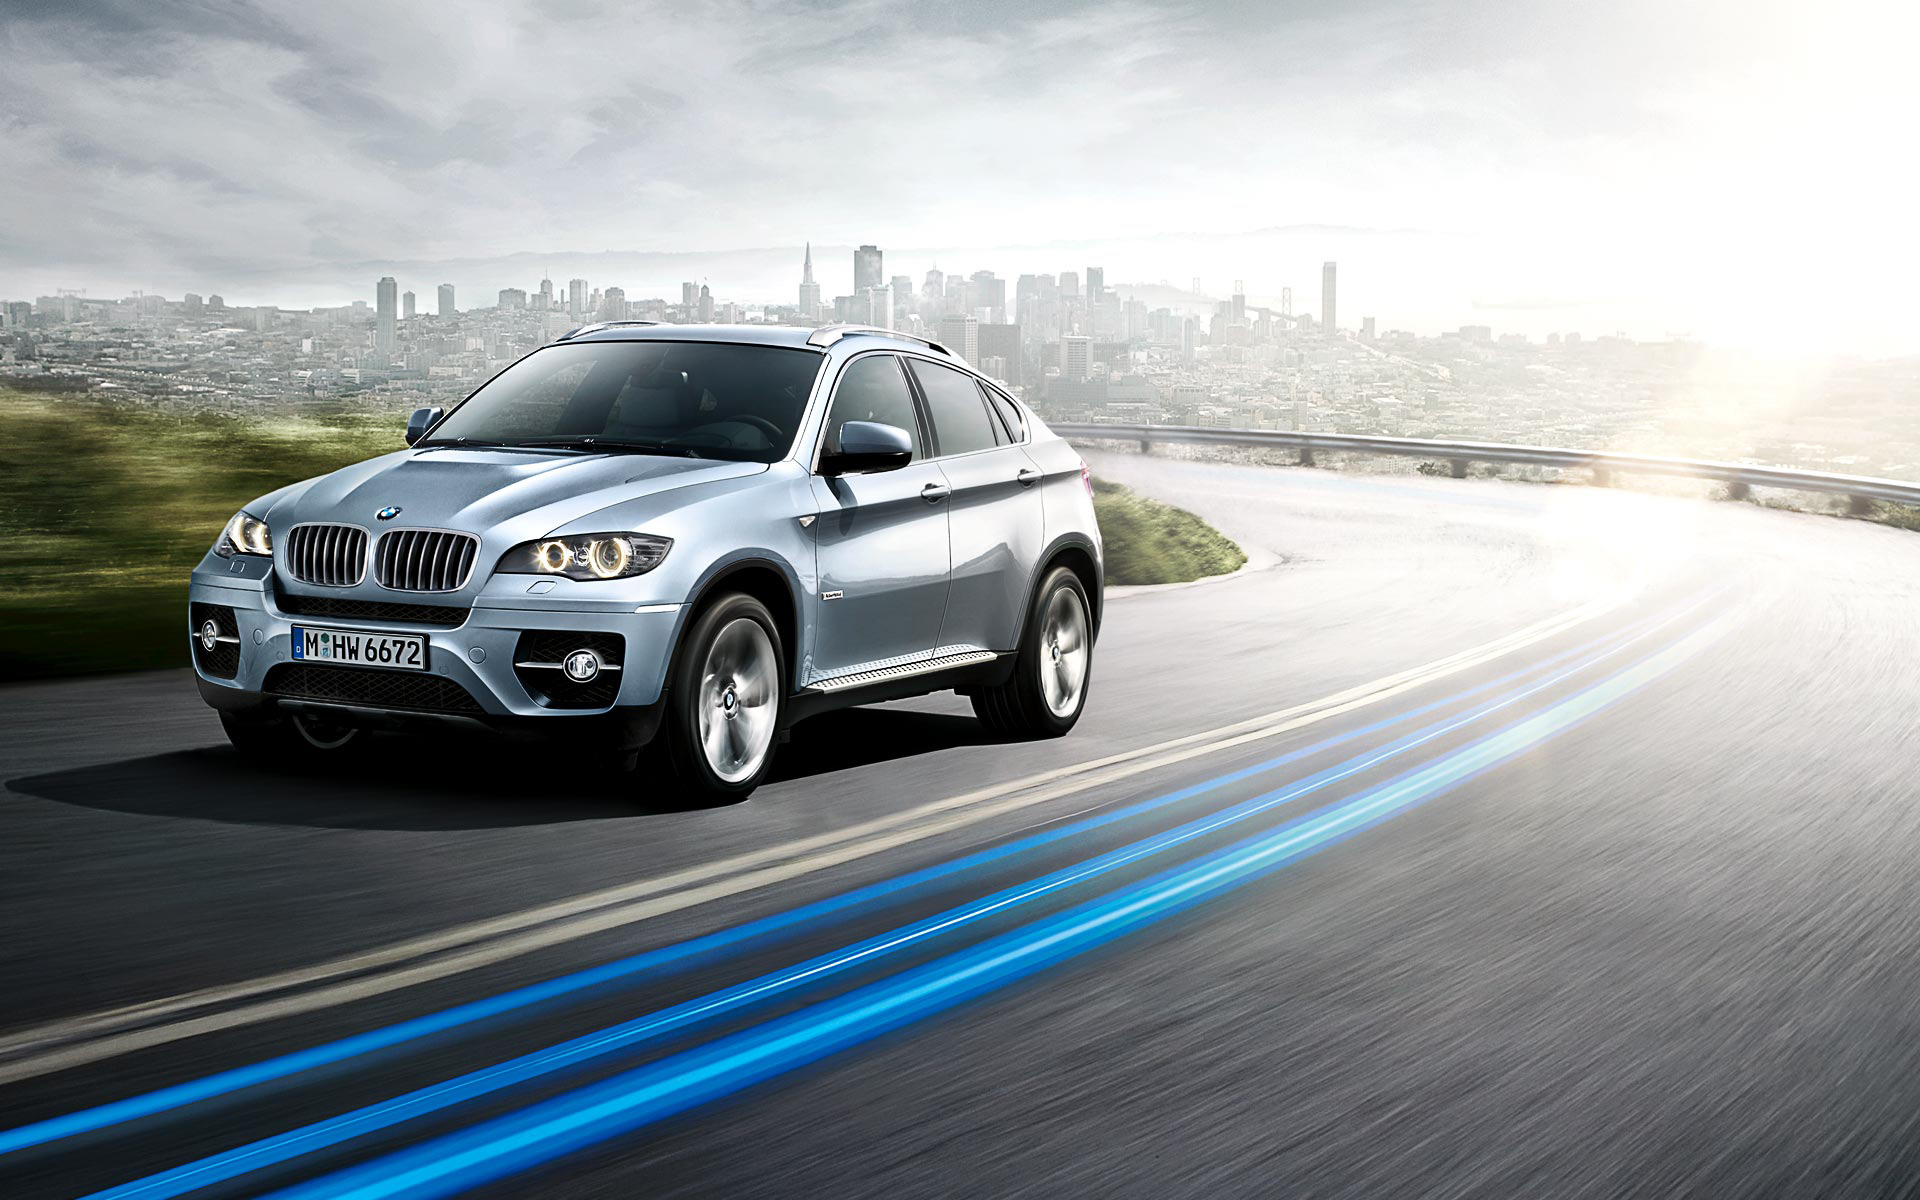 1920x1200 - BMW X6 Wallpapers 33